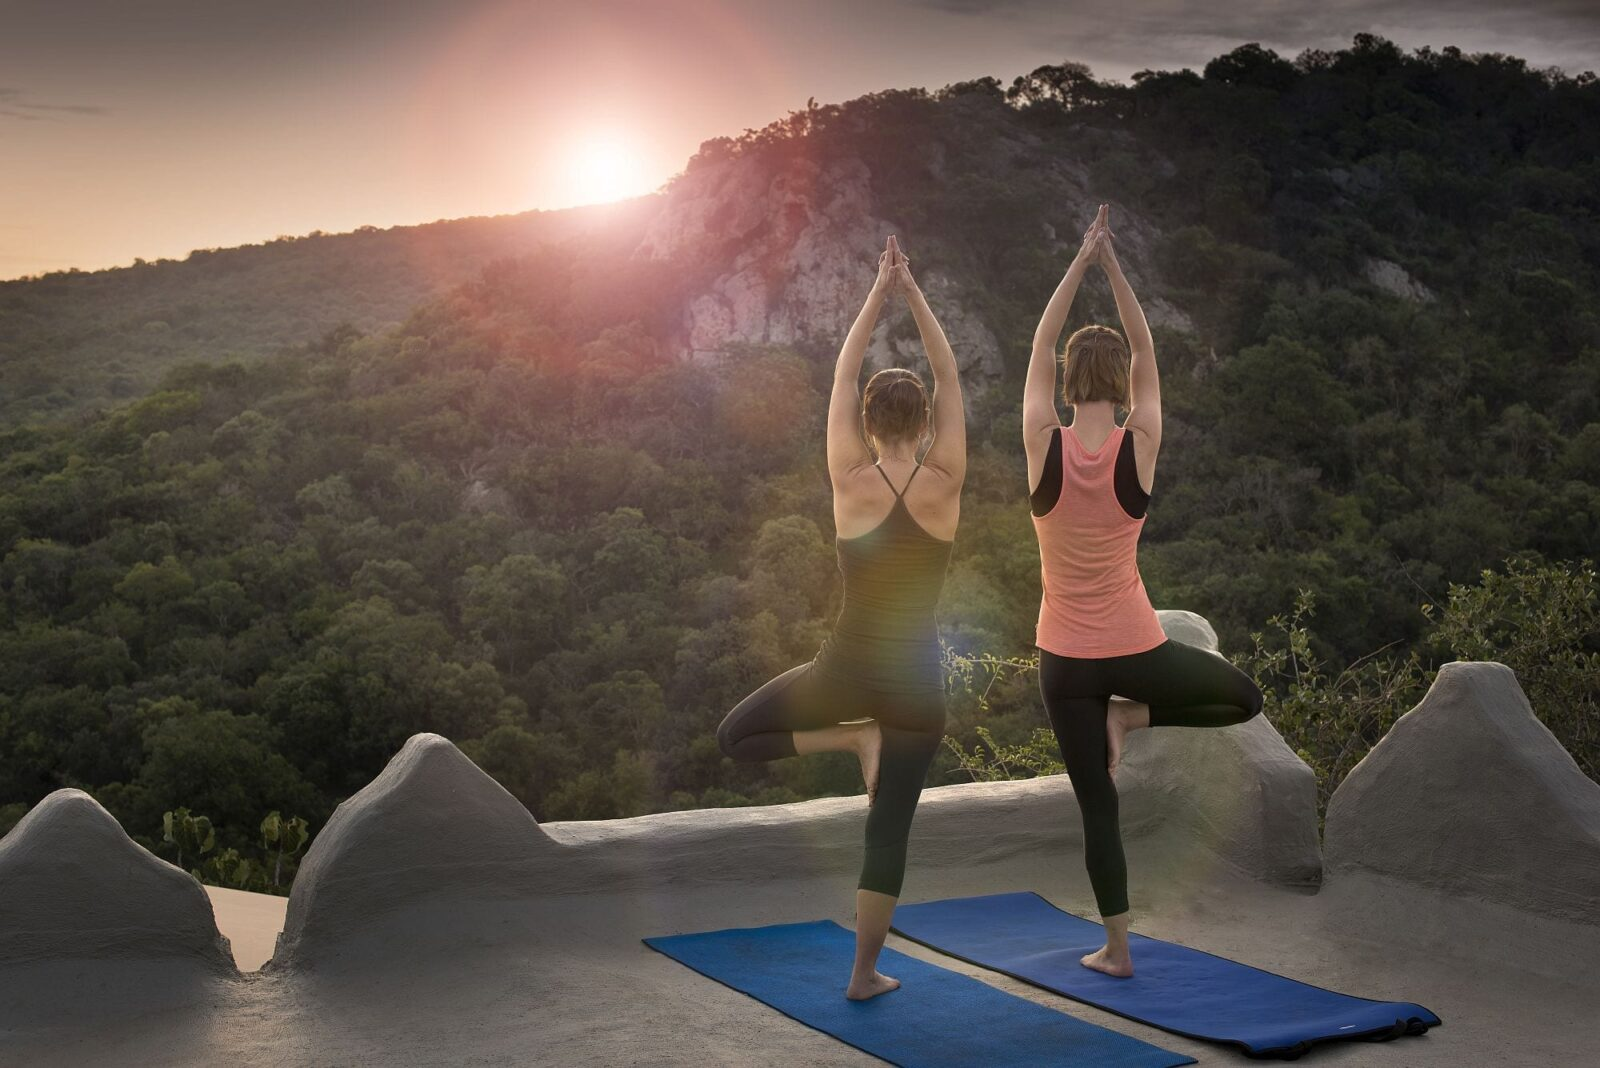 Your Body and Soul Yearns for Pampering. Yoga and Wellness experiences in Africa.